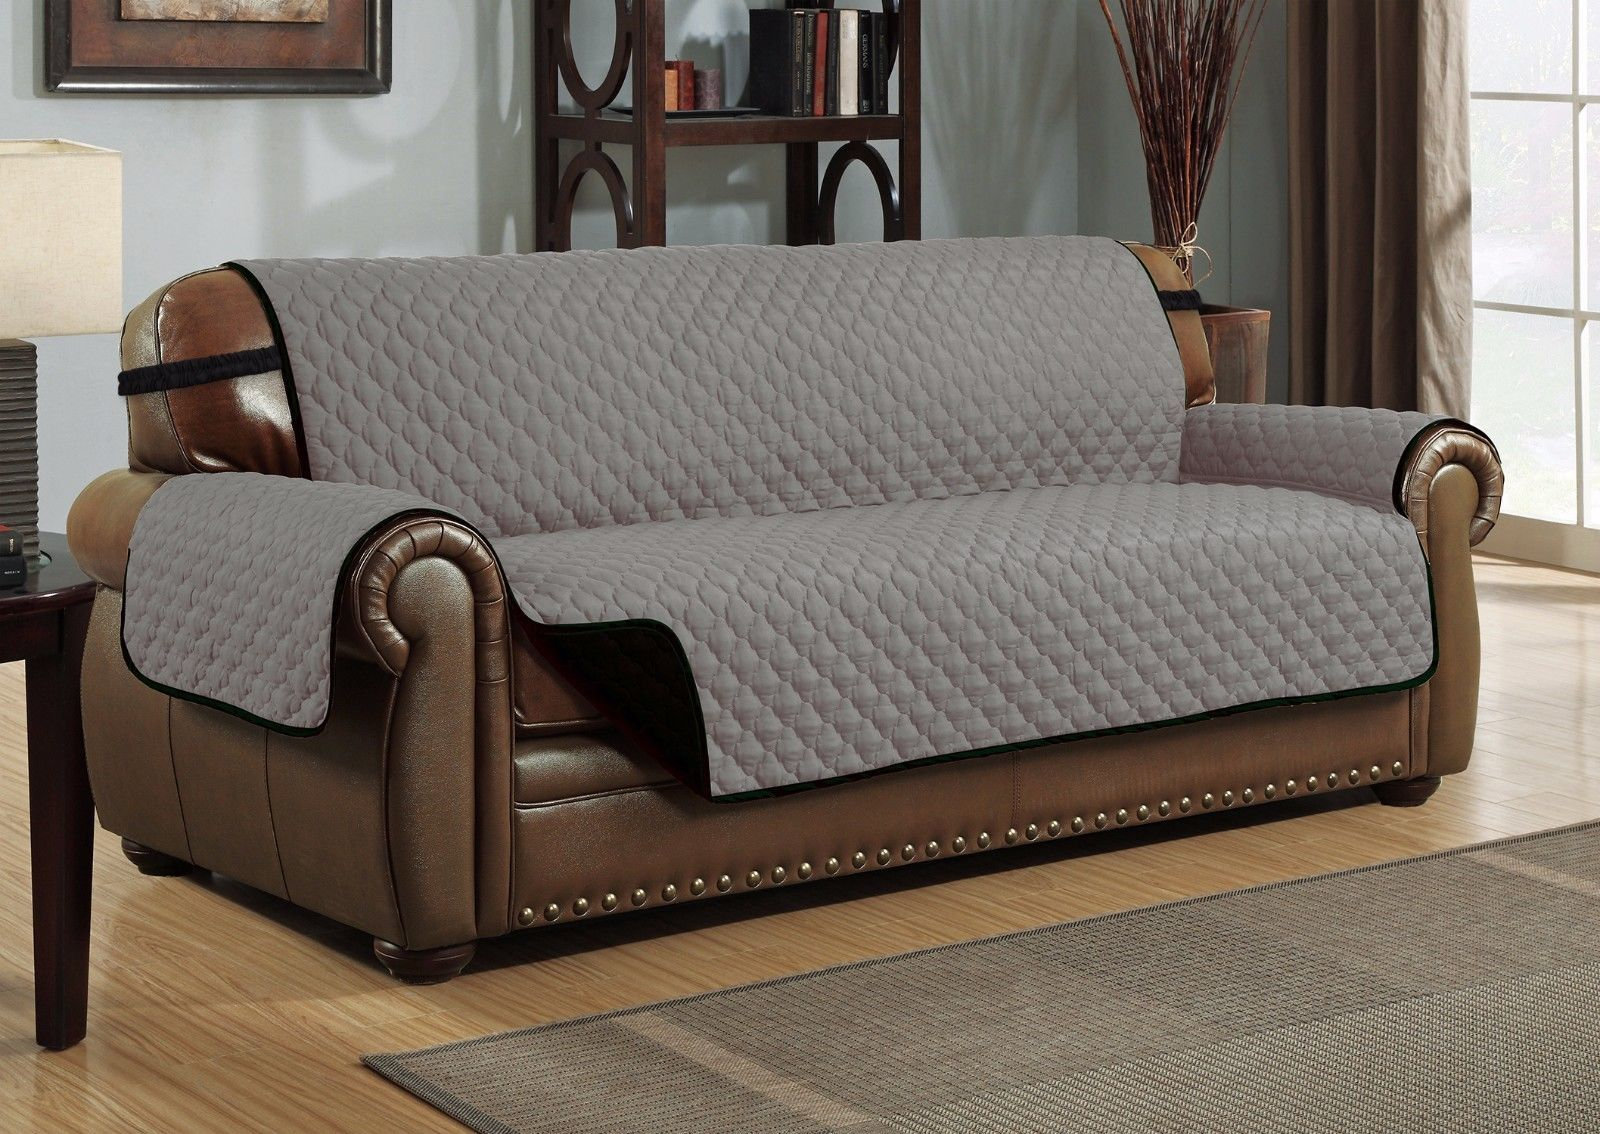 contemporary pet cover for sofa pattern-Fantastic Pet Cover for sofa Decoration